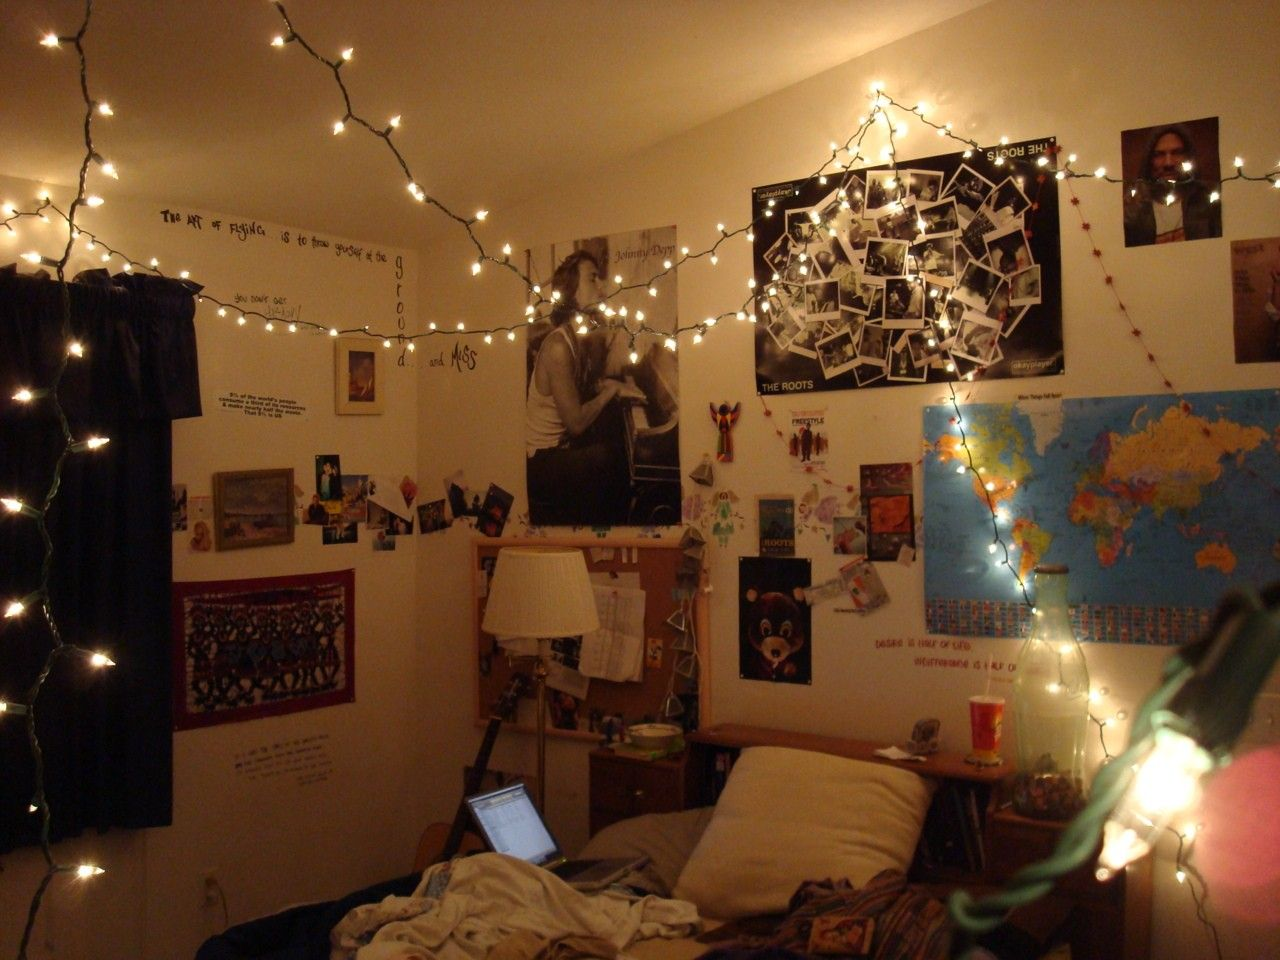 Diy tumblr room decor pinterest google search bedroom for Bedroom ideas teenage girl tumblr